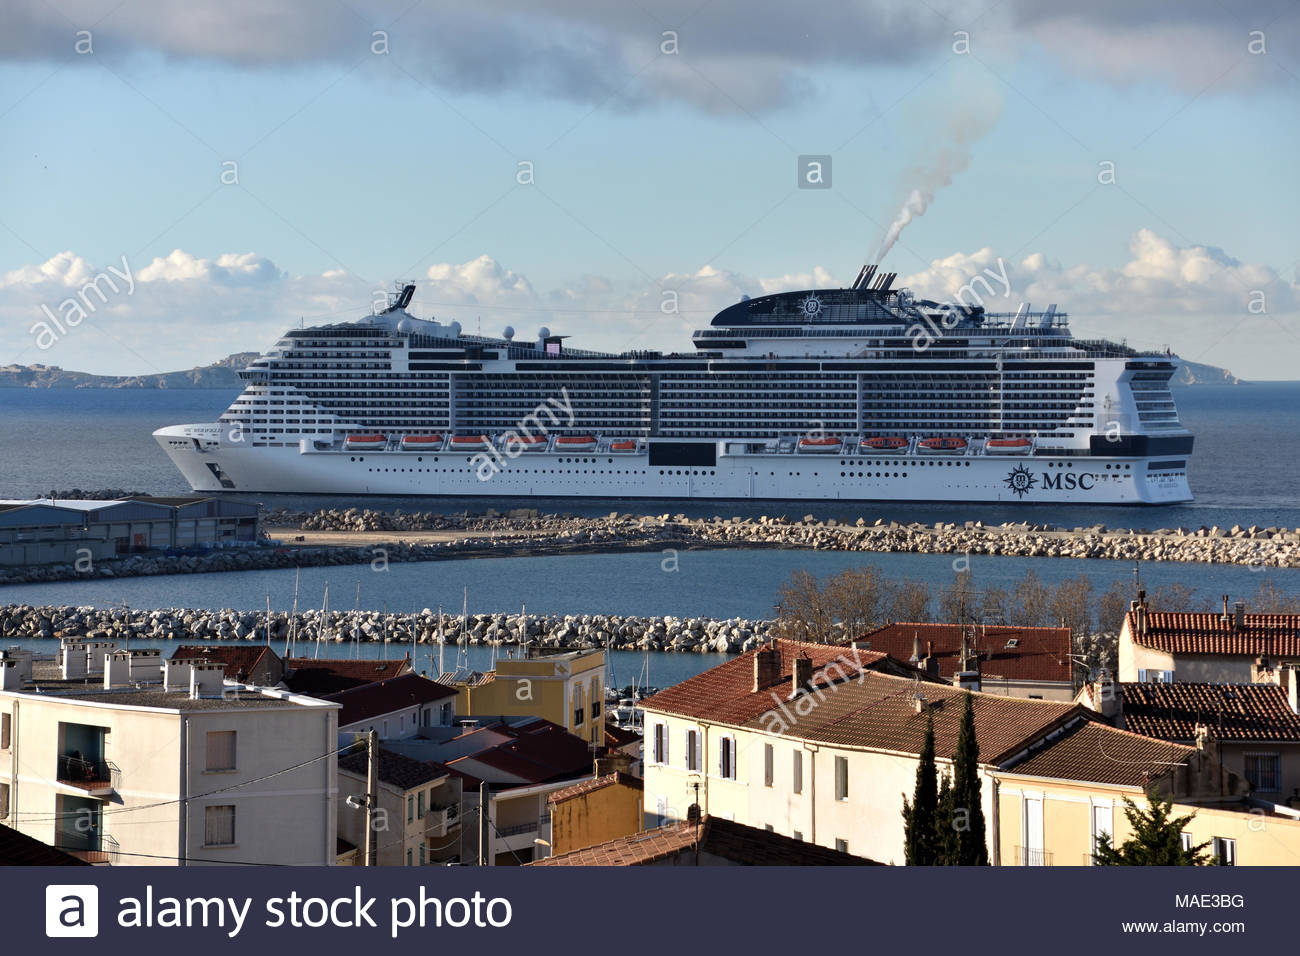 ship management stockfotos ship management bilder alamy. Black Bedroom Furniture Sets. Home Design Ideas